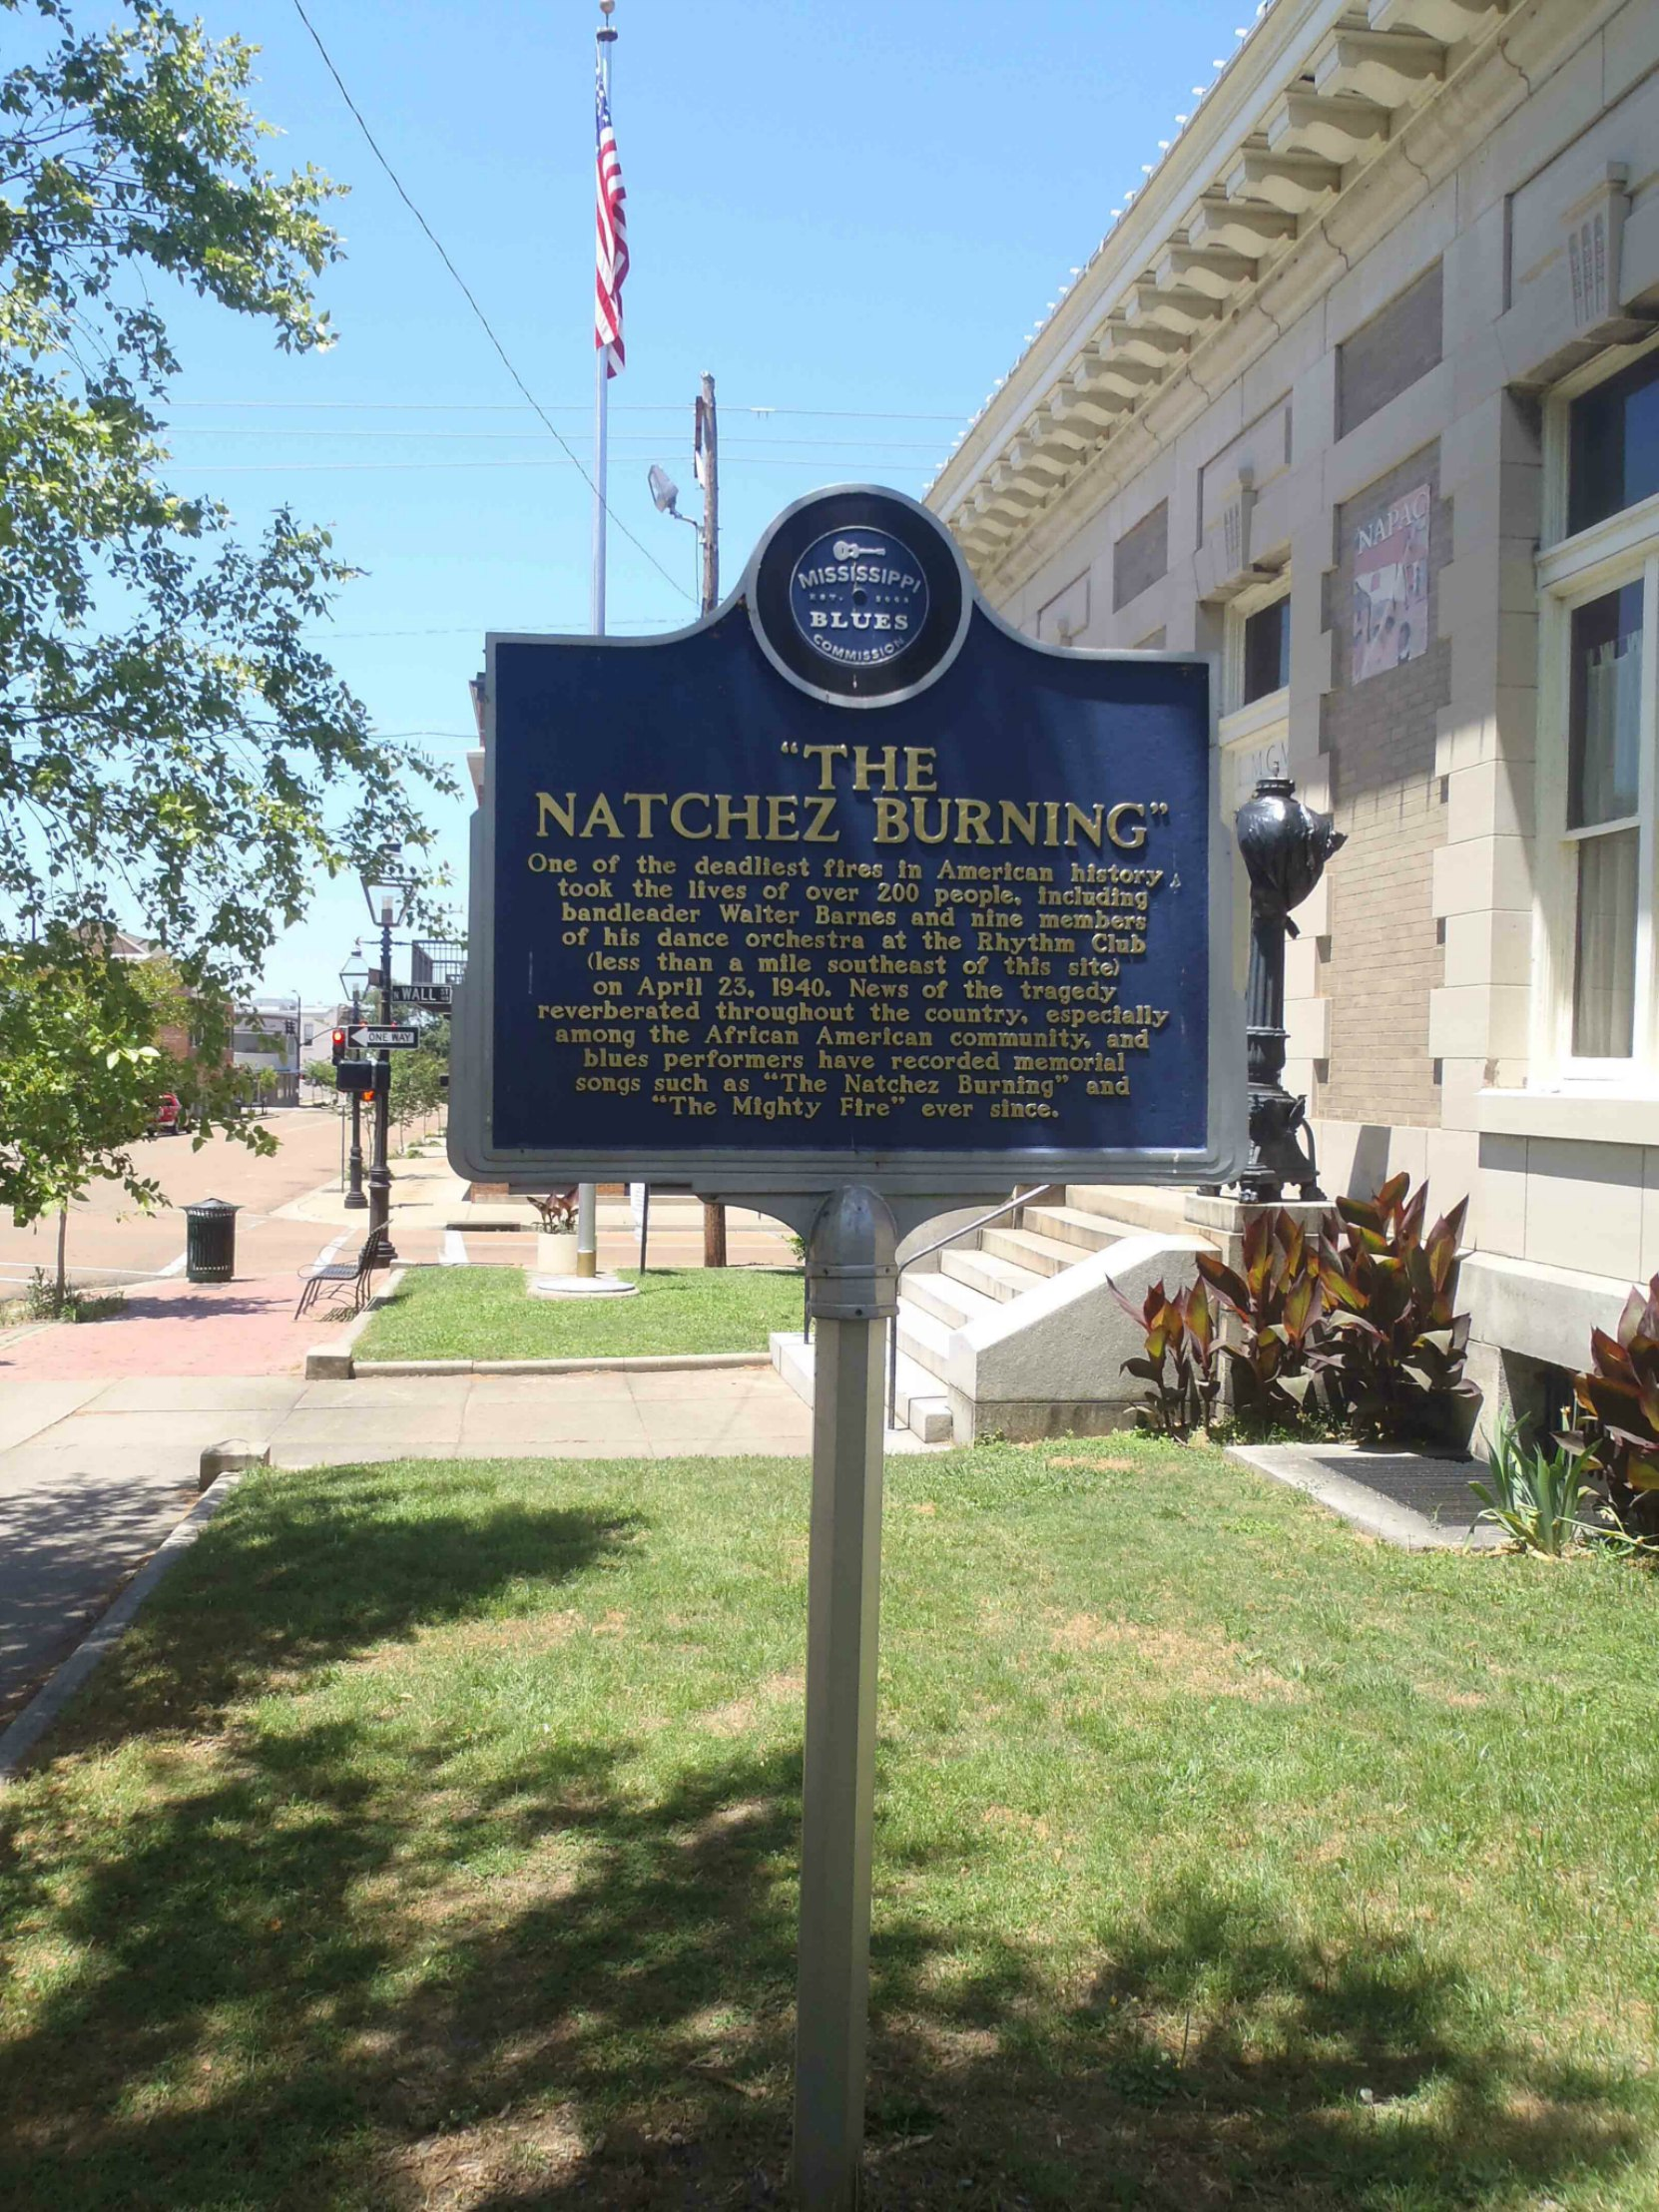 Mississippi Blues Trail marker commemorating The Natchez Burning, Natchez, Mississippi